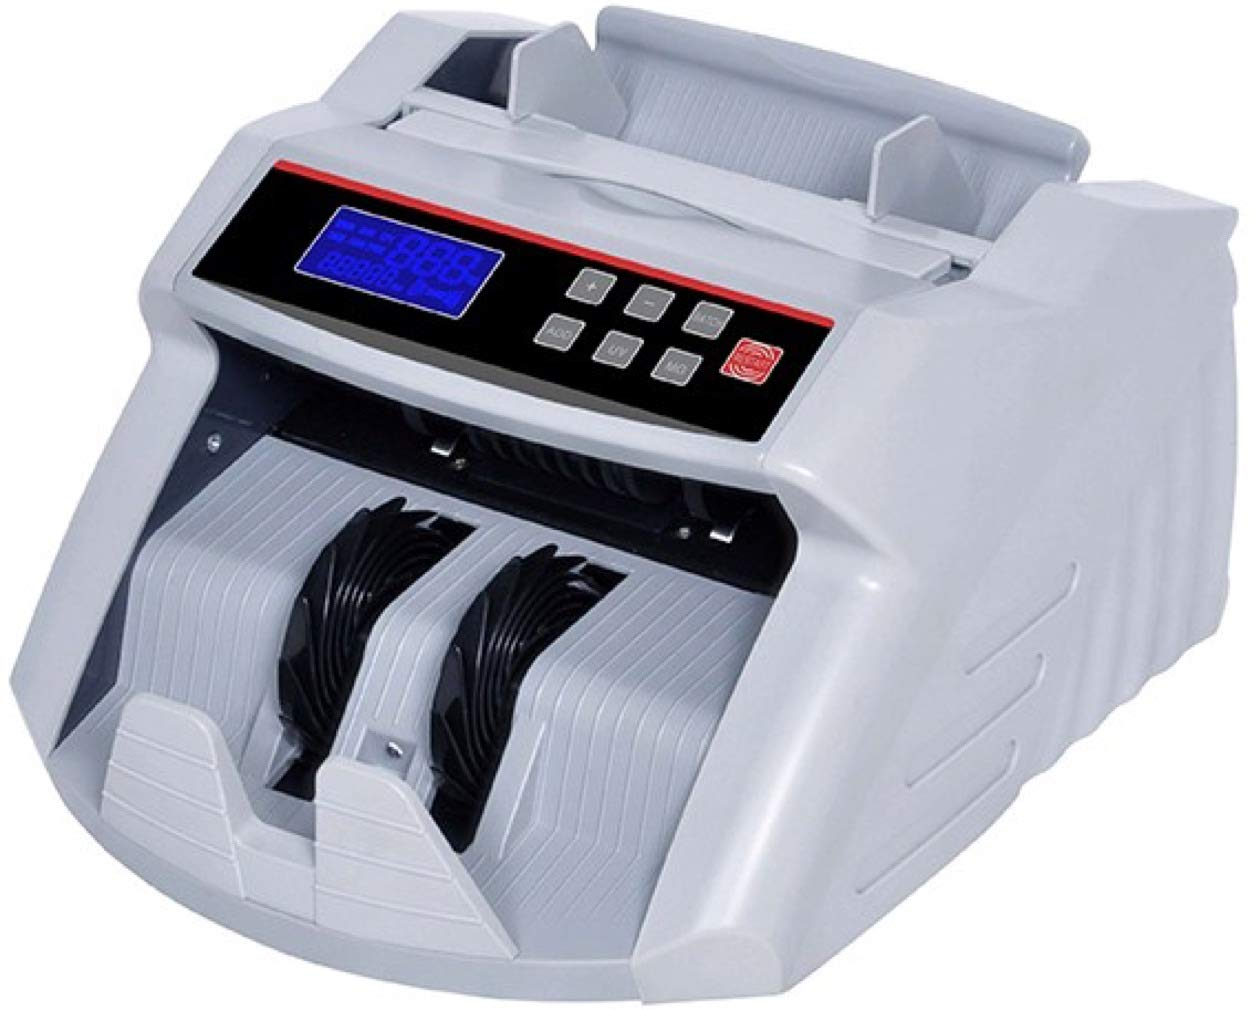 Gobbler PX5388 Note Counting Machine With Currency Detector